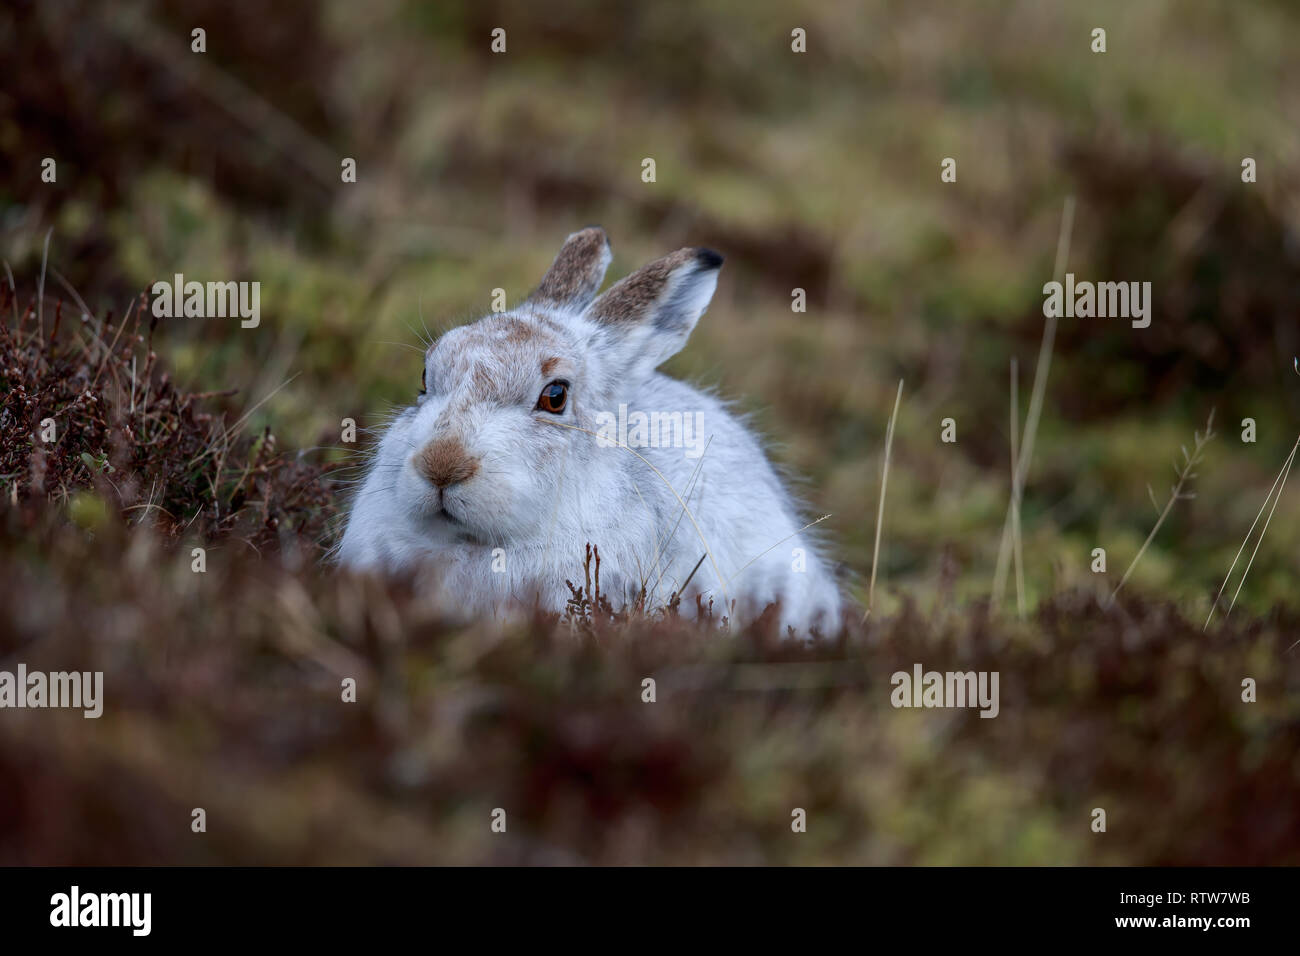 The mountain hare, also known as white hare, snow hare, alpine hare, is a Palearctic hare that is largely adapted to polar and mountains - Stock Image